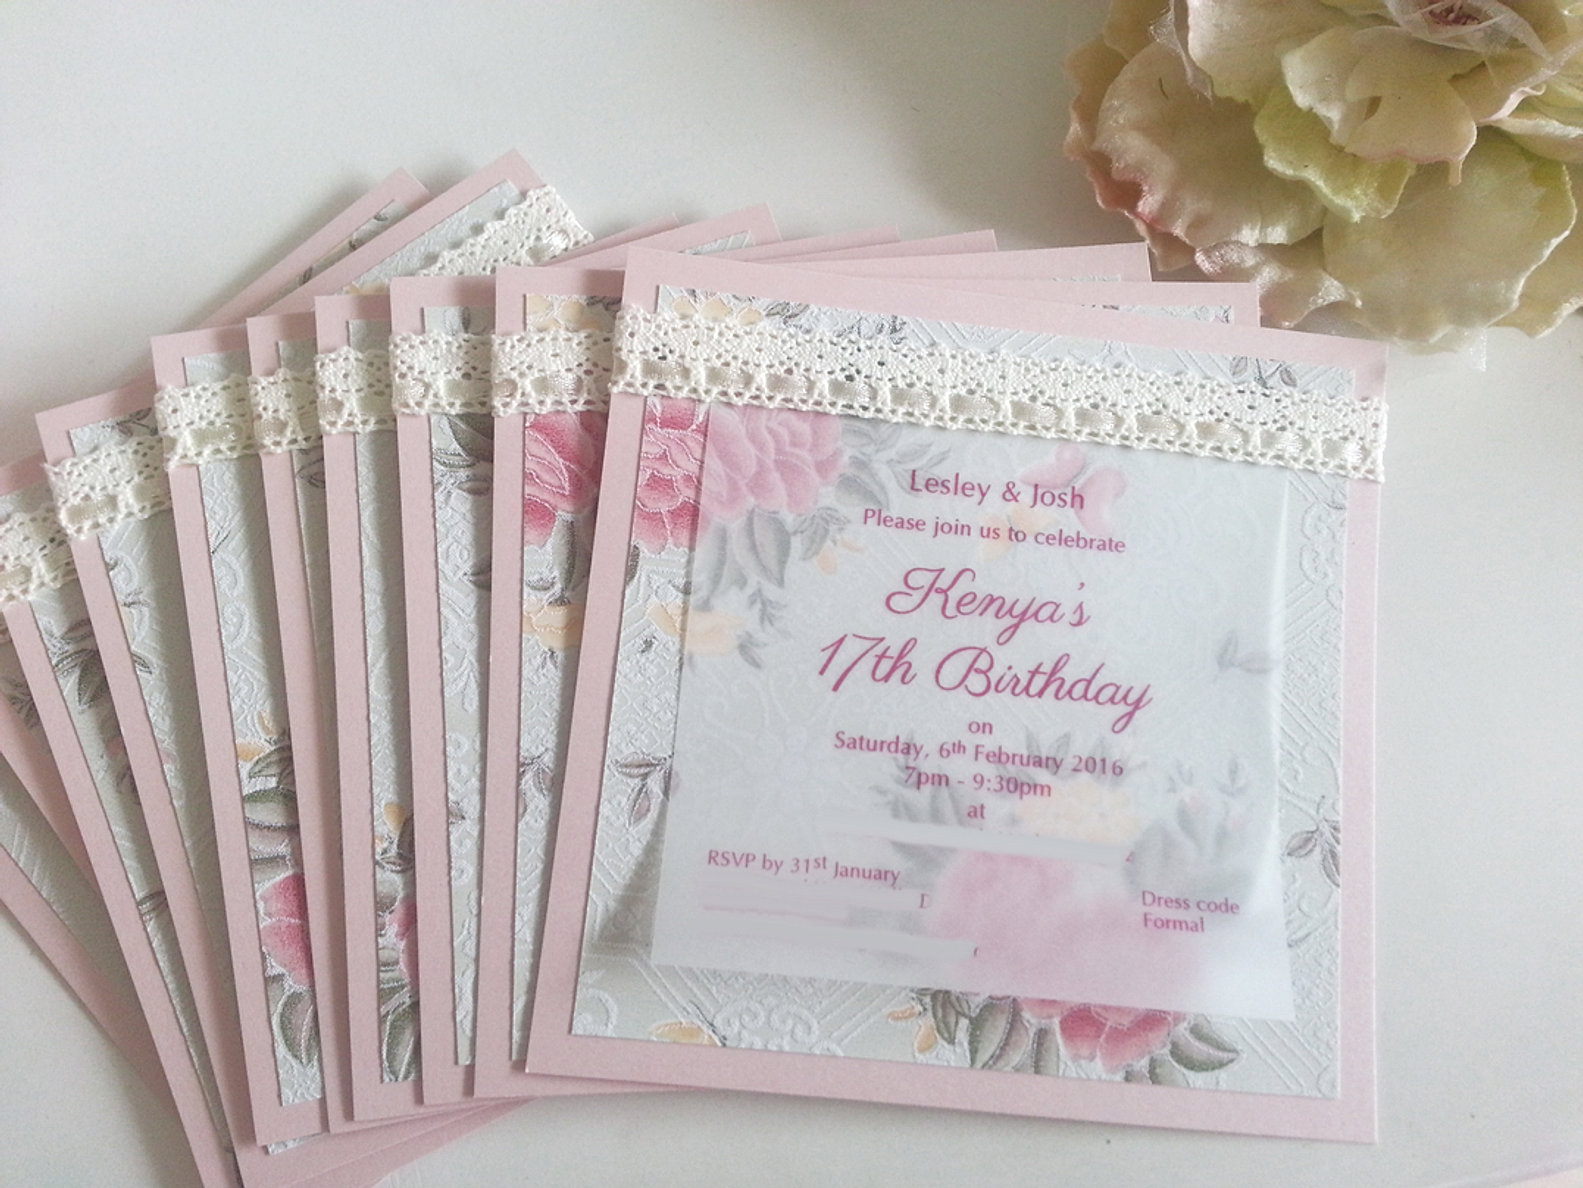 Birthday Invitations Sydney Gallery - Invitation Templates Free Download